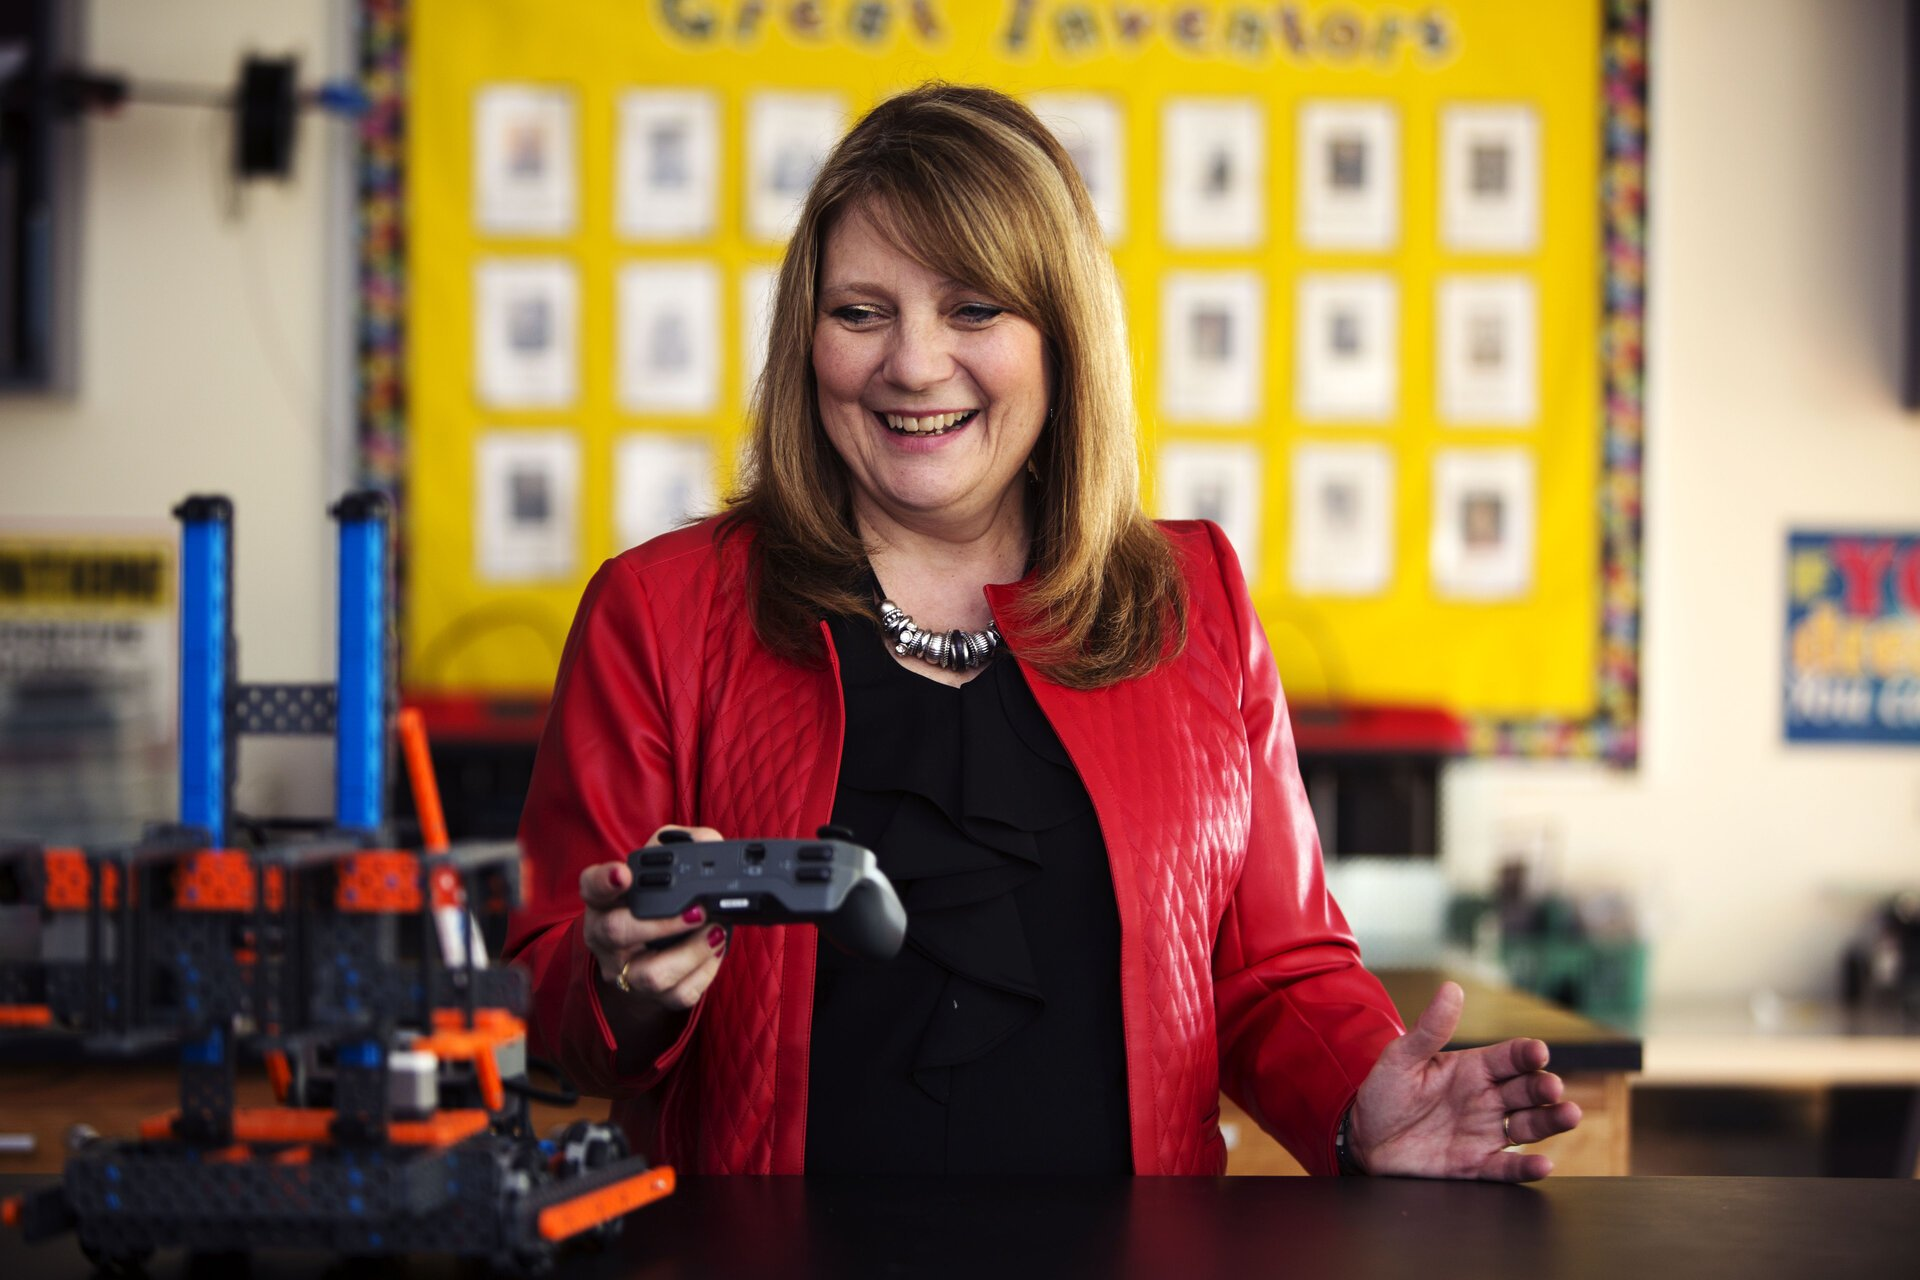 Debbie Huffine, ACE doctoral student, demonstrates with a robot built by the students in her class.